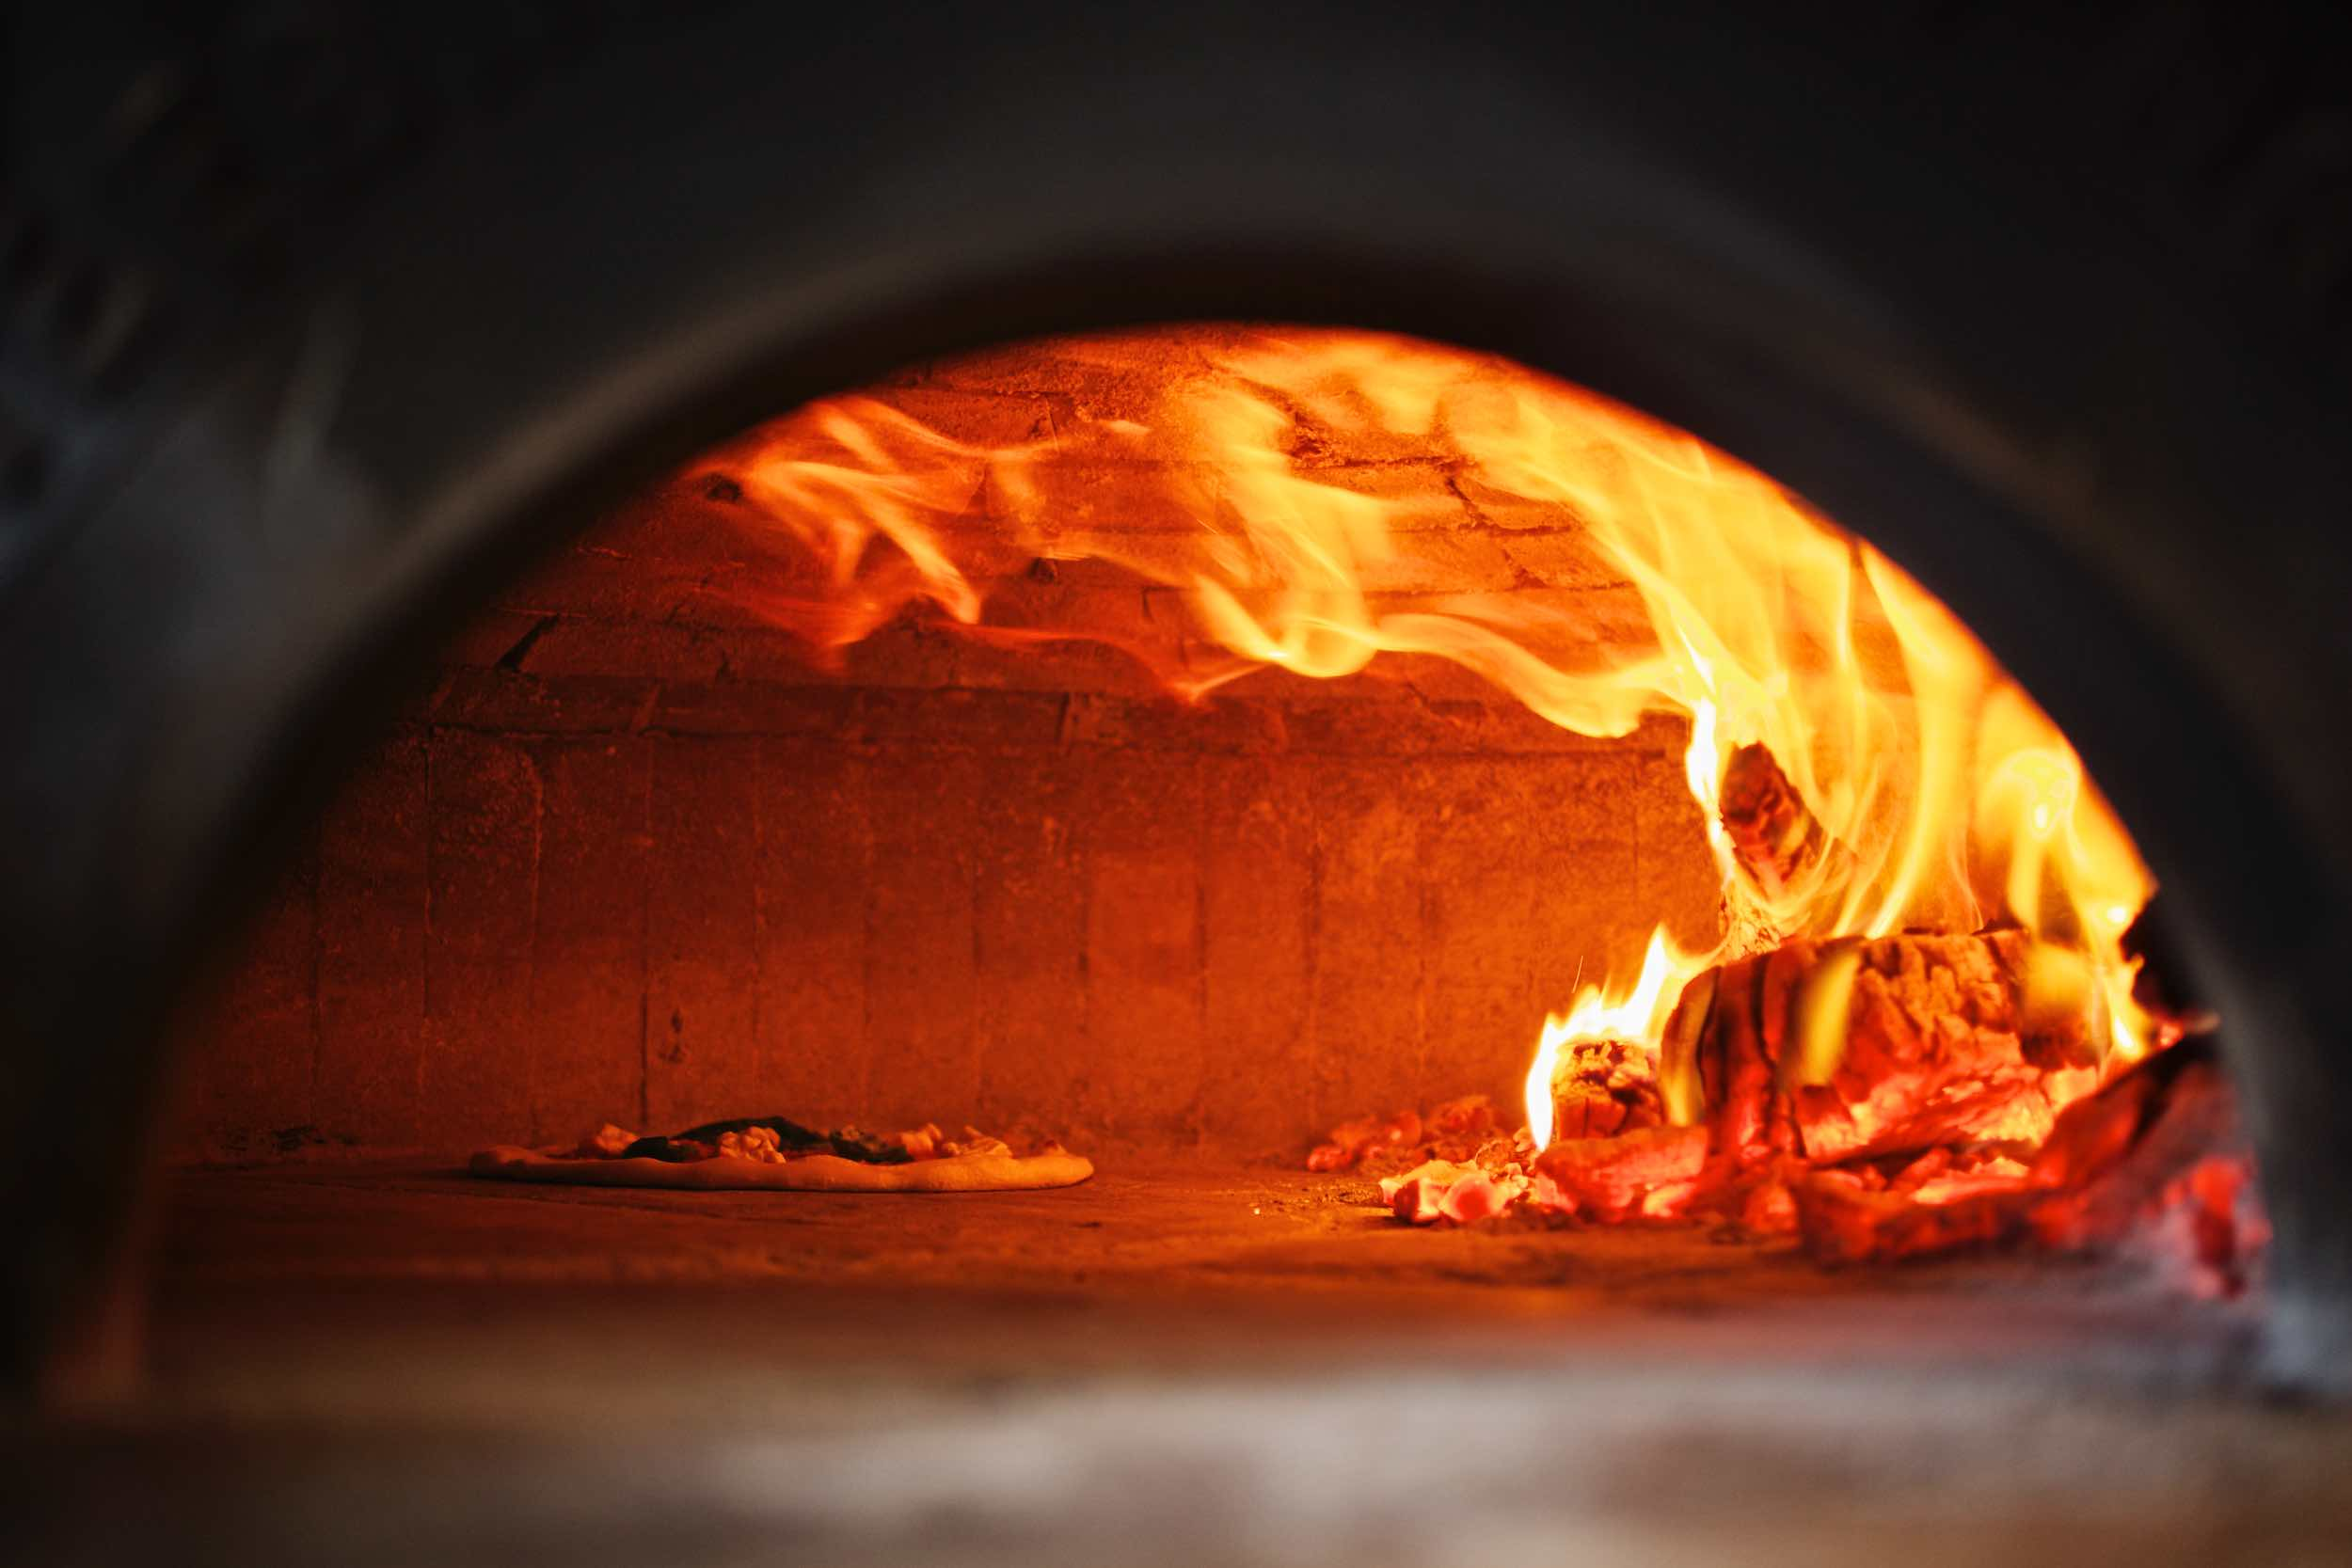 Jody Horton Photography - Pizza cooking inside brick pizza oven.